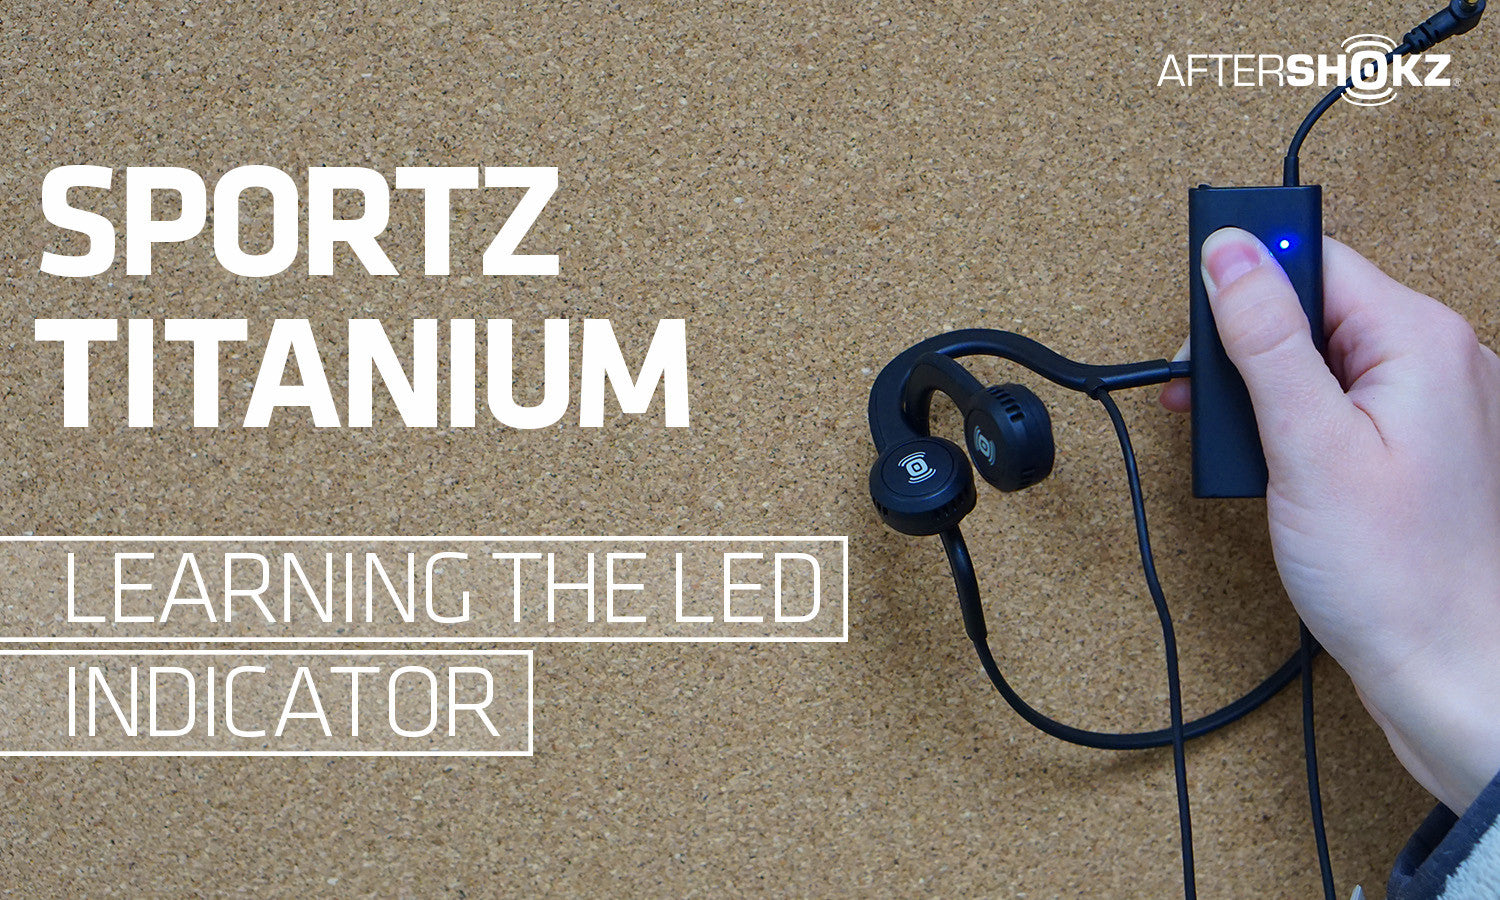 How To Read the LED Indicator On Your Sportz Titanium Headphones